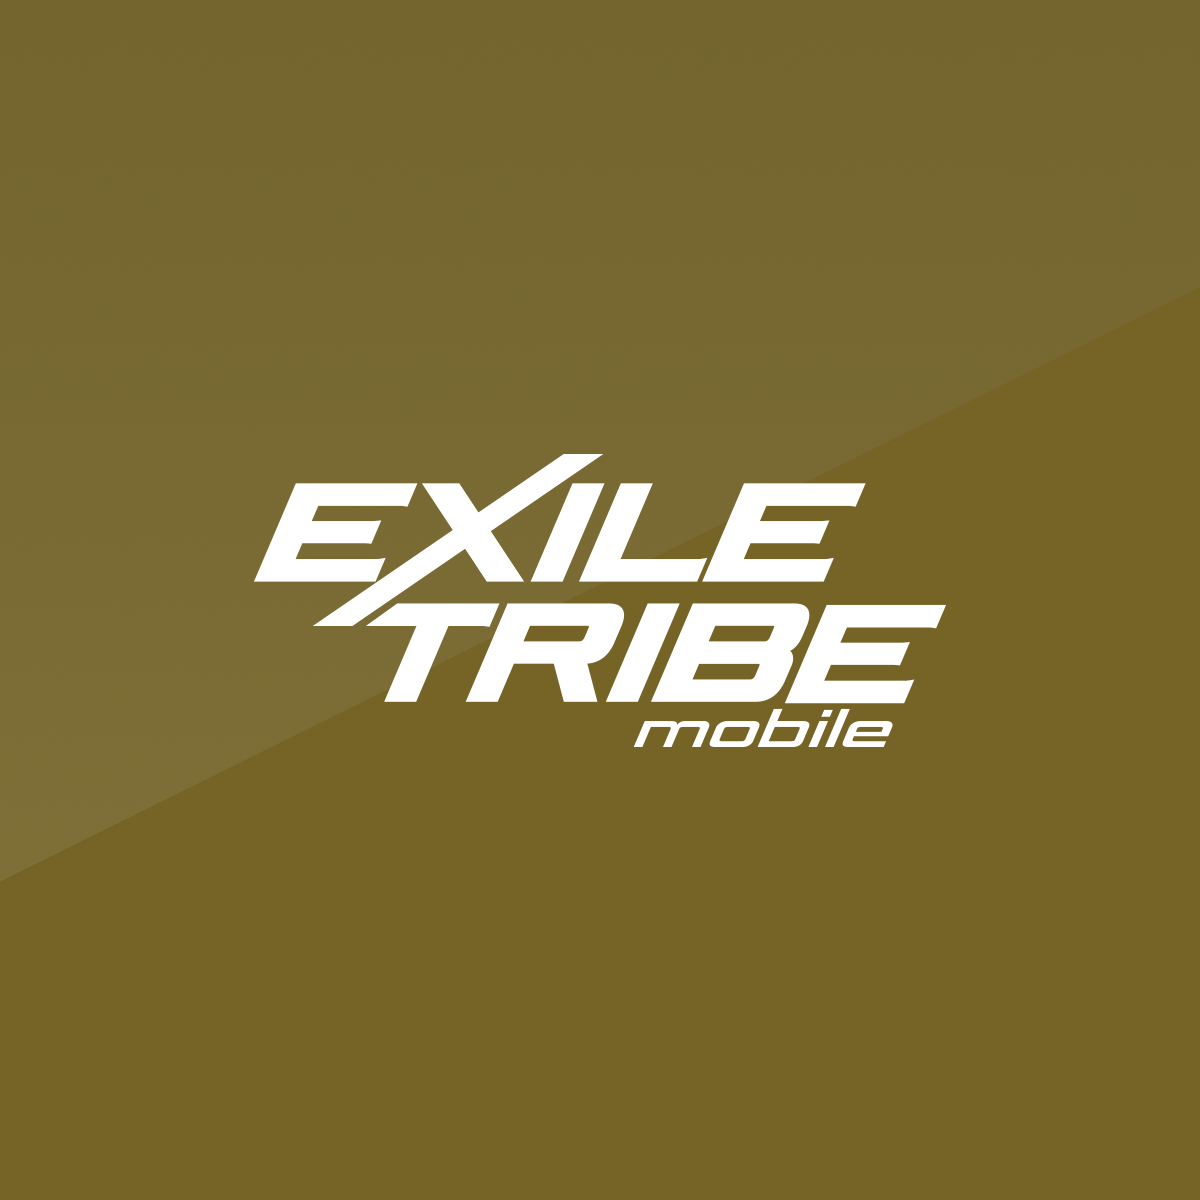 GENERATIONS from EXILE TRIBE 新曲「また、アシタ」音源試聴スタート!! | EXILE TRIBE mobile